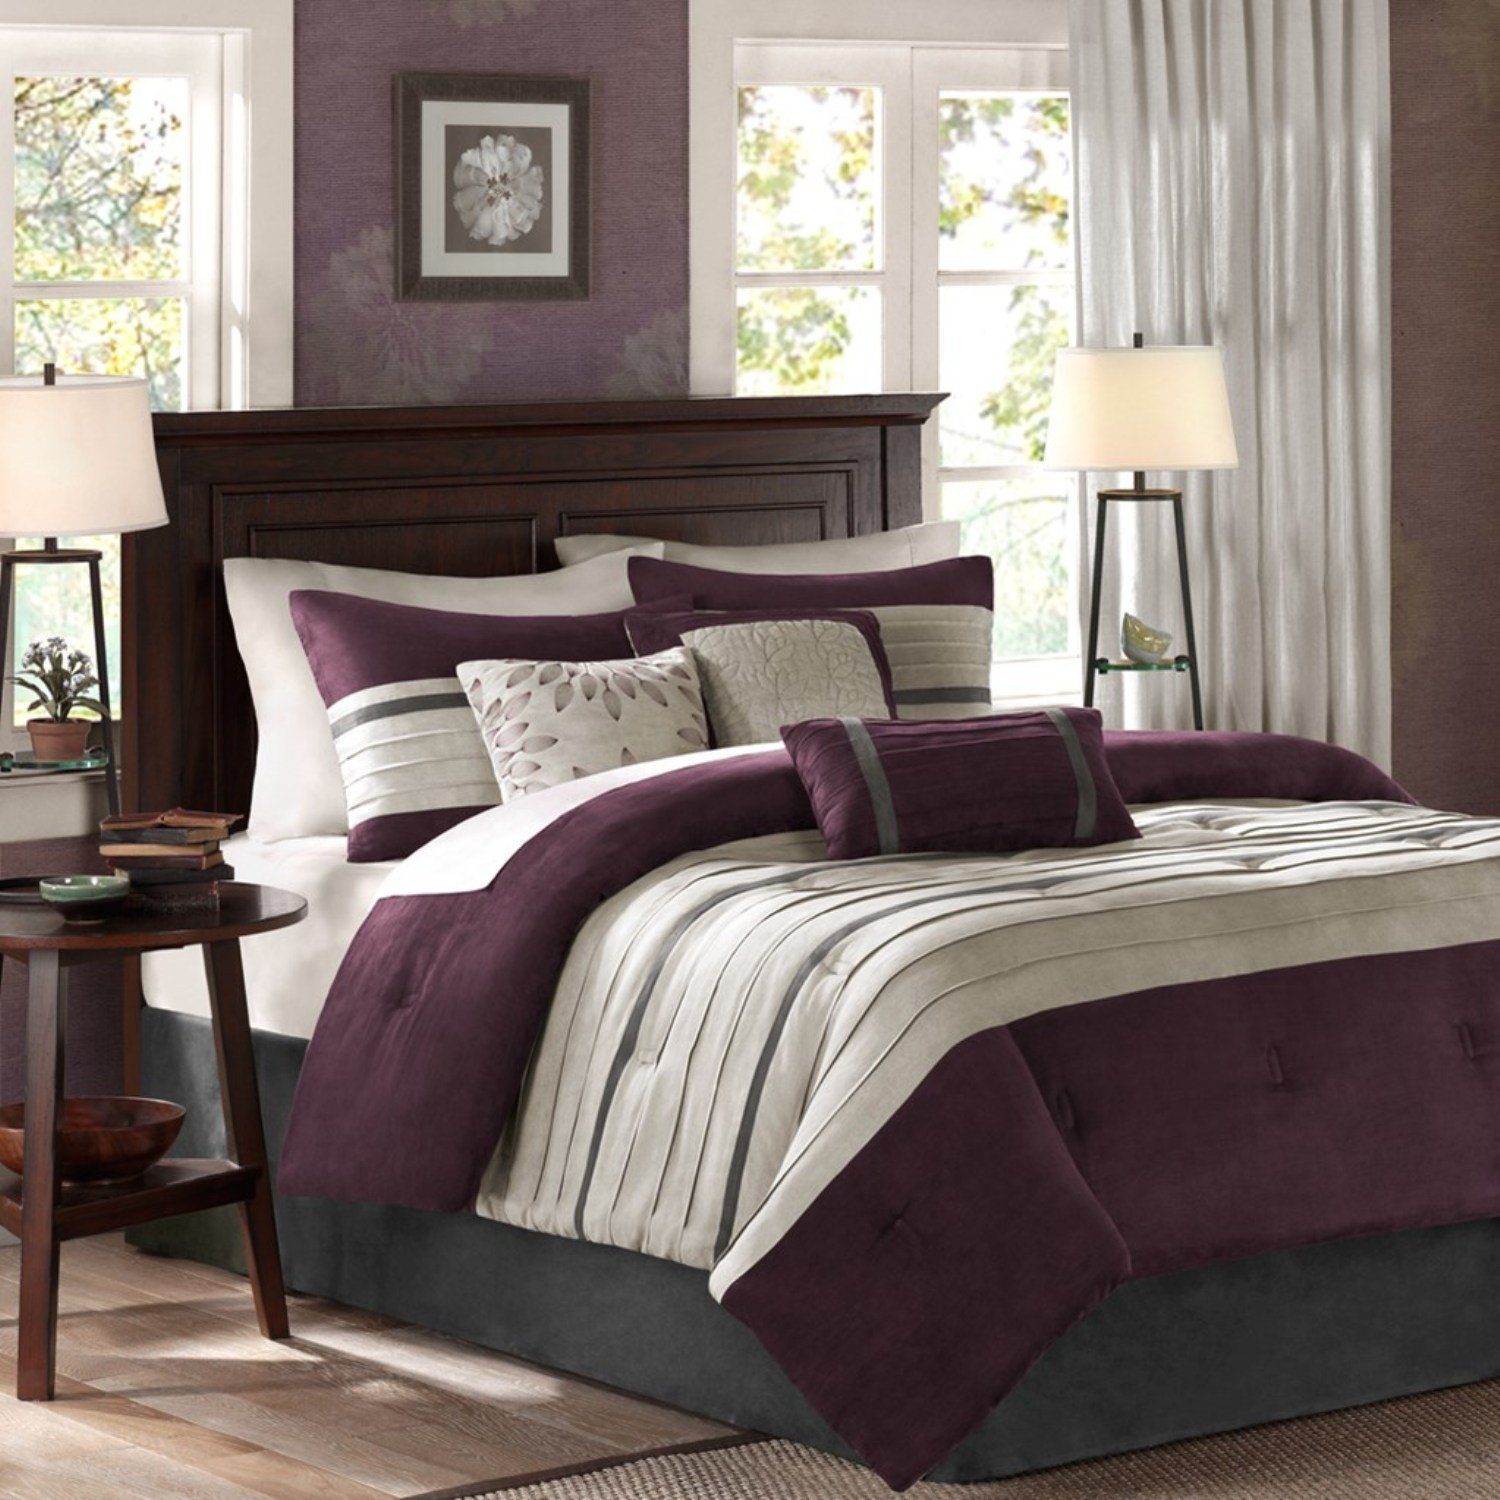 Best Grey And Purple Comforter Bedding Sets With Pictures